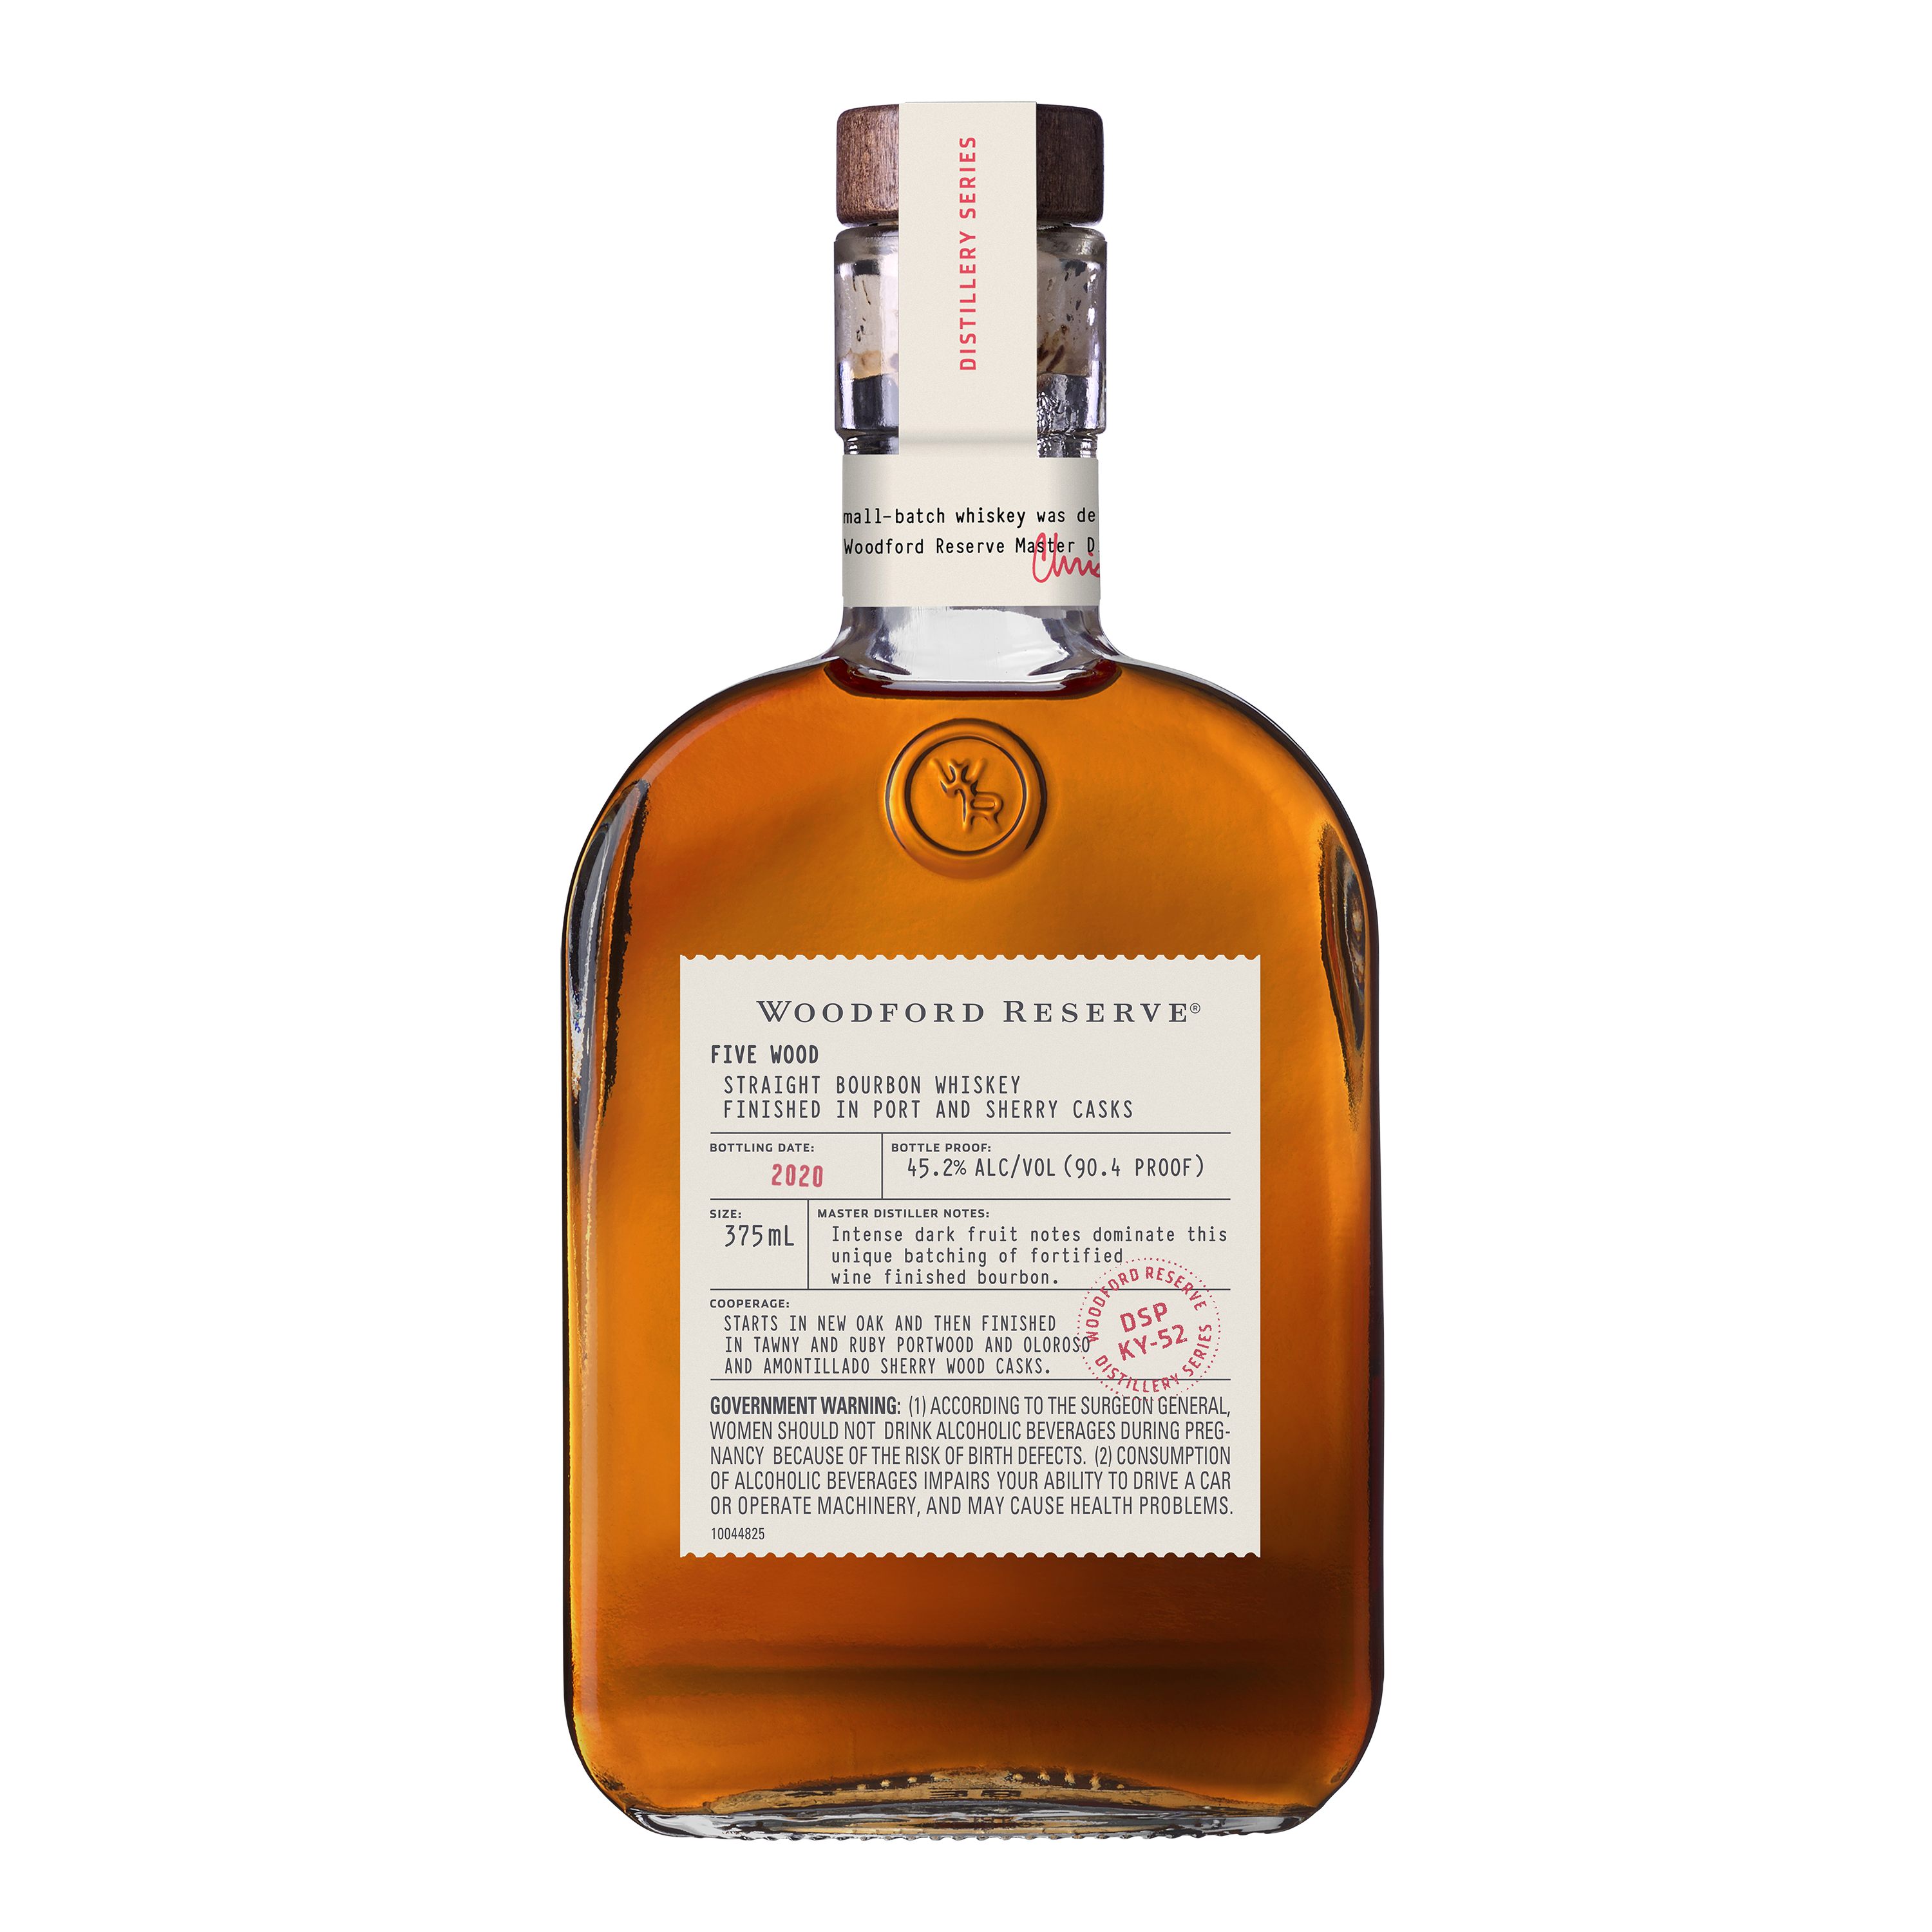 Woodford Reserve Distillery Series Five Wood Straight Bourbon Whiskey 2020